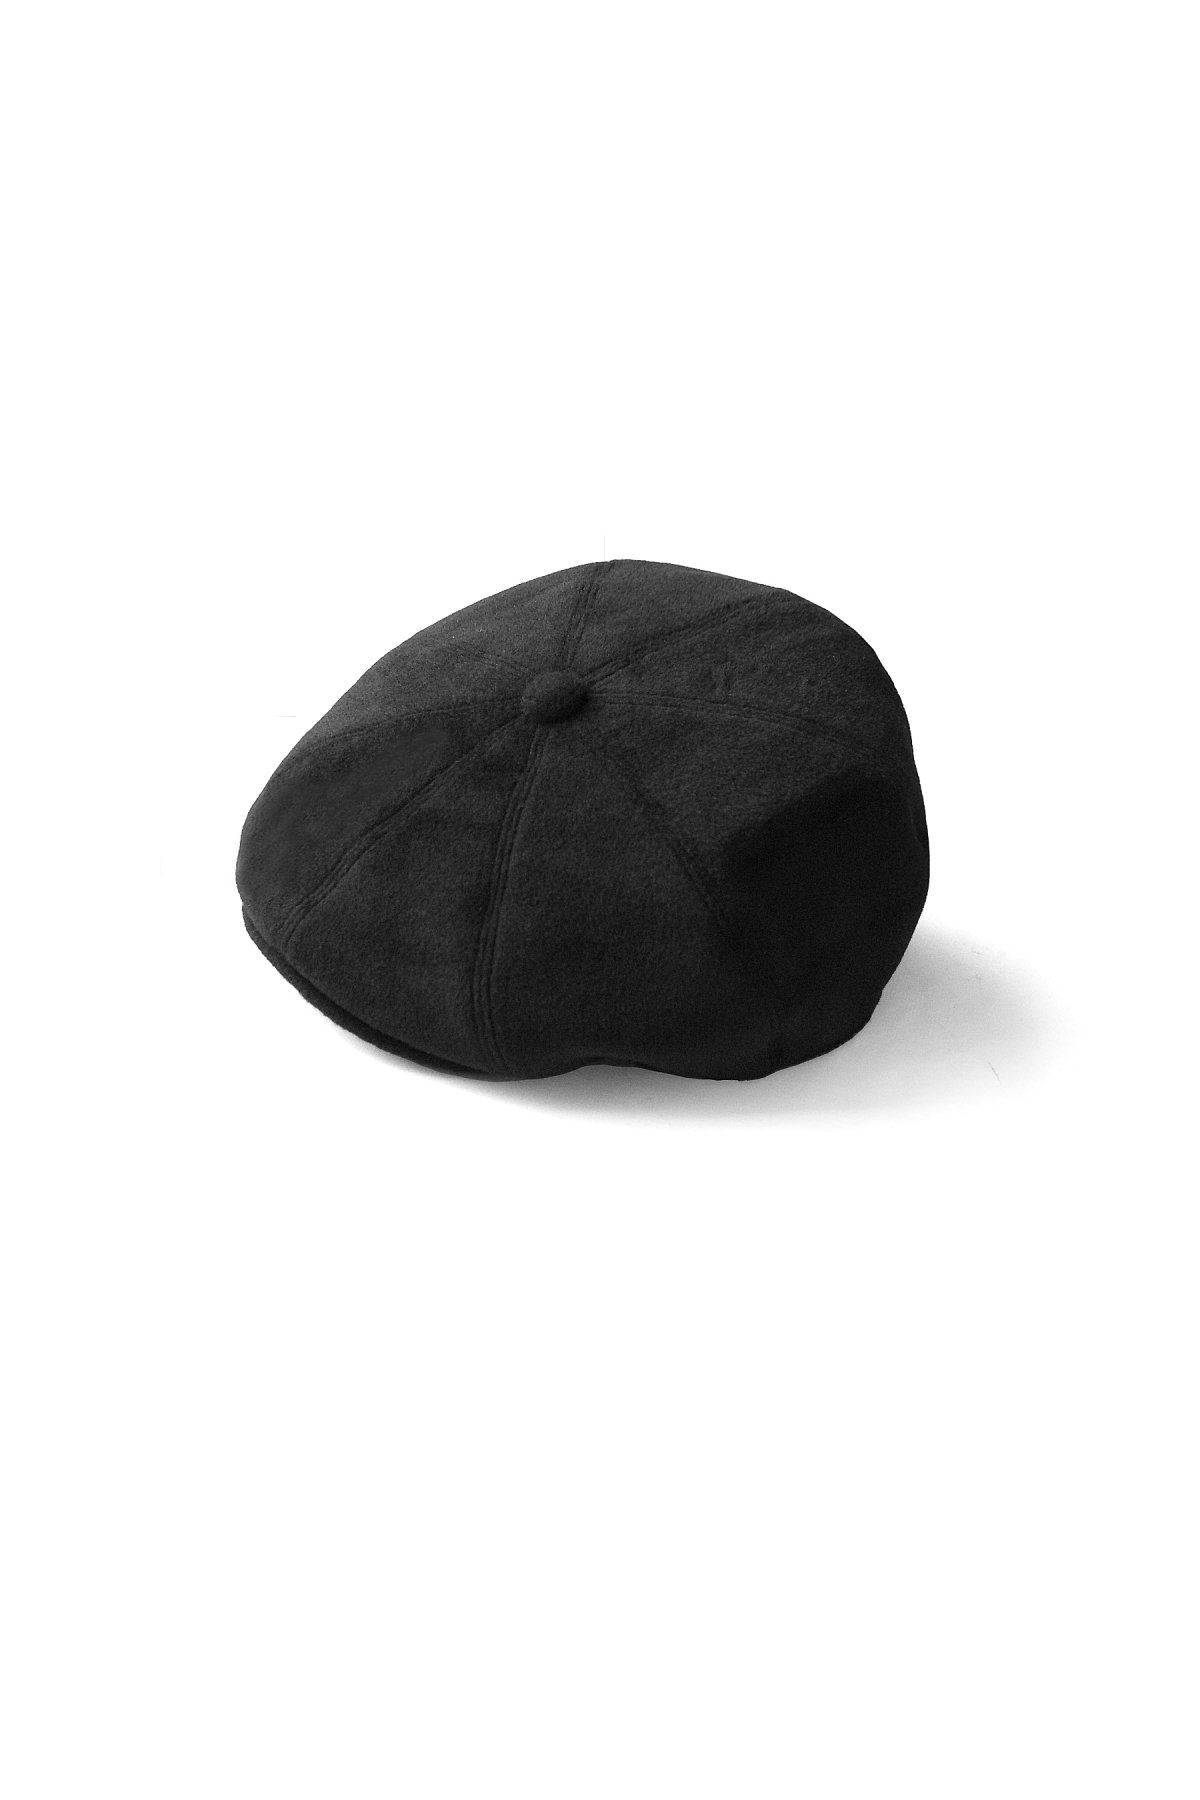 CAP - OLD JOE - EAR GUARD PEAKED CAP - BLACK - PRICE 22,000 tax-in